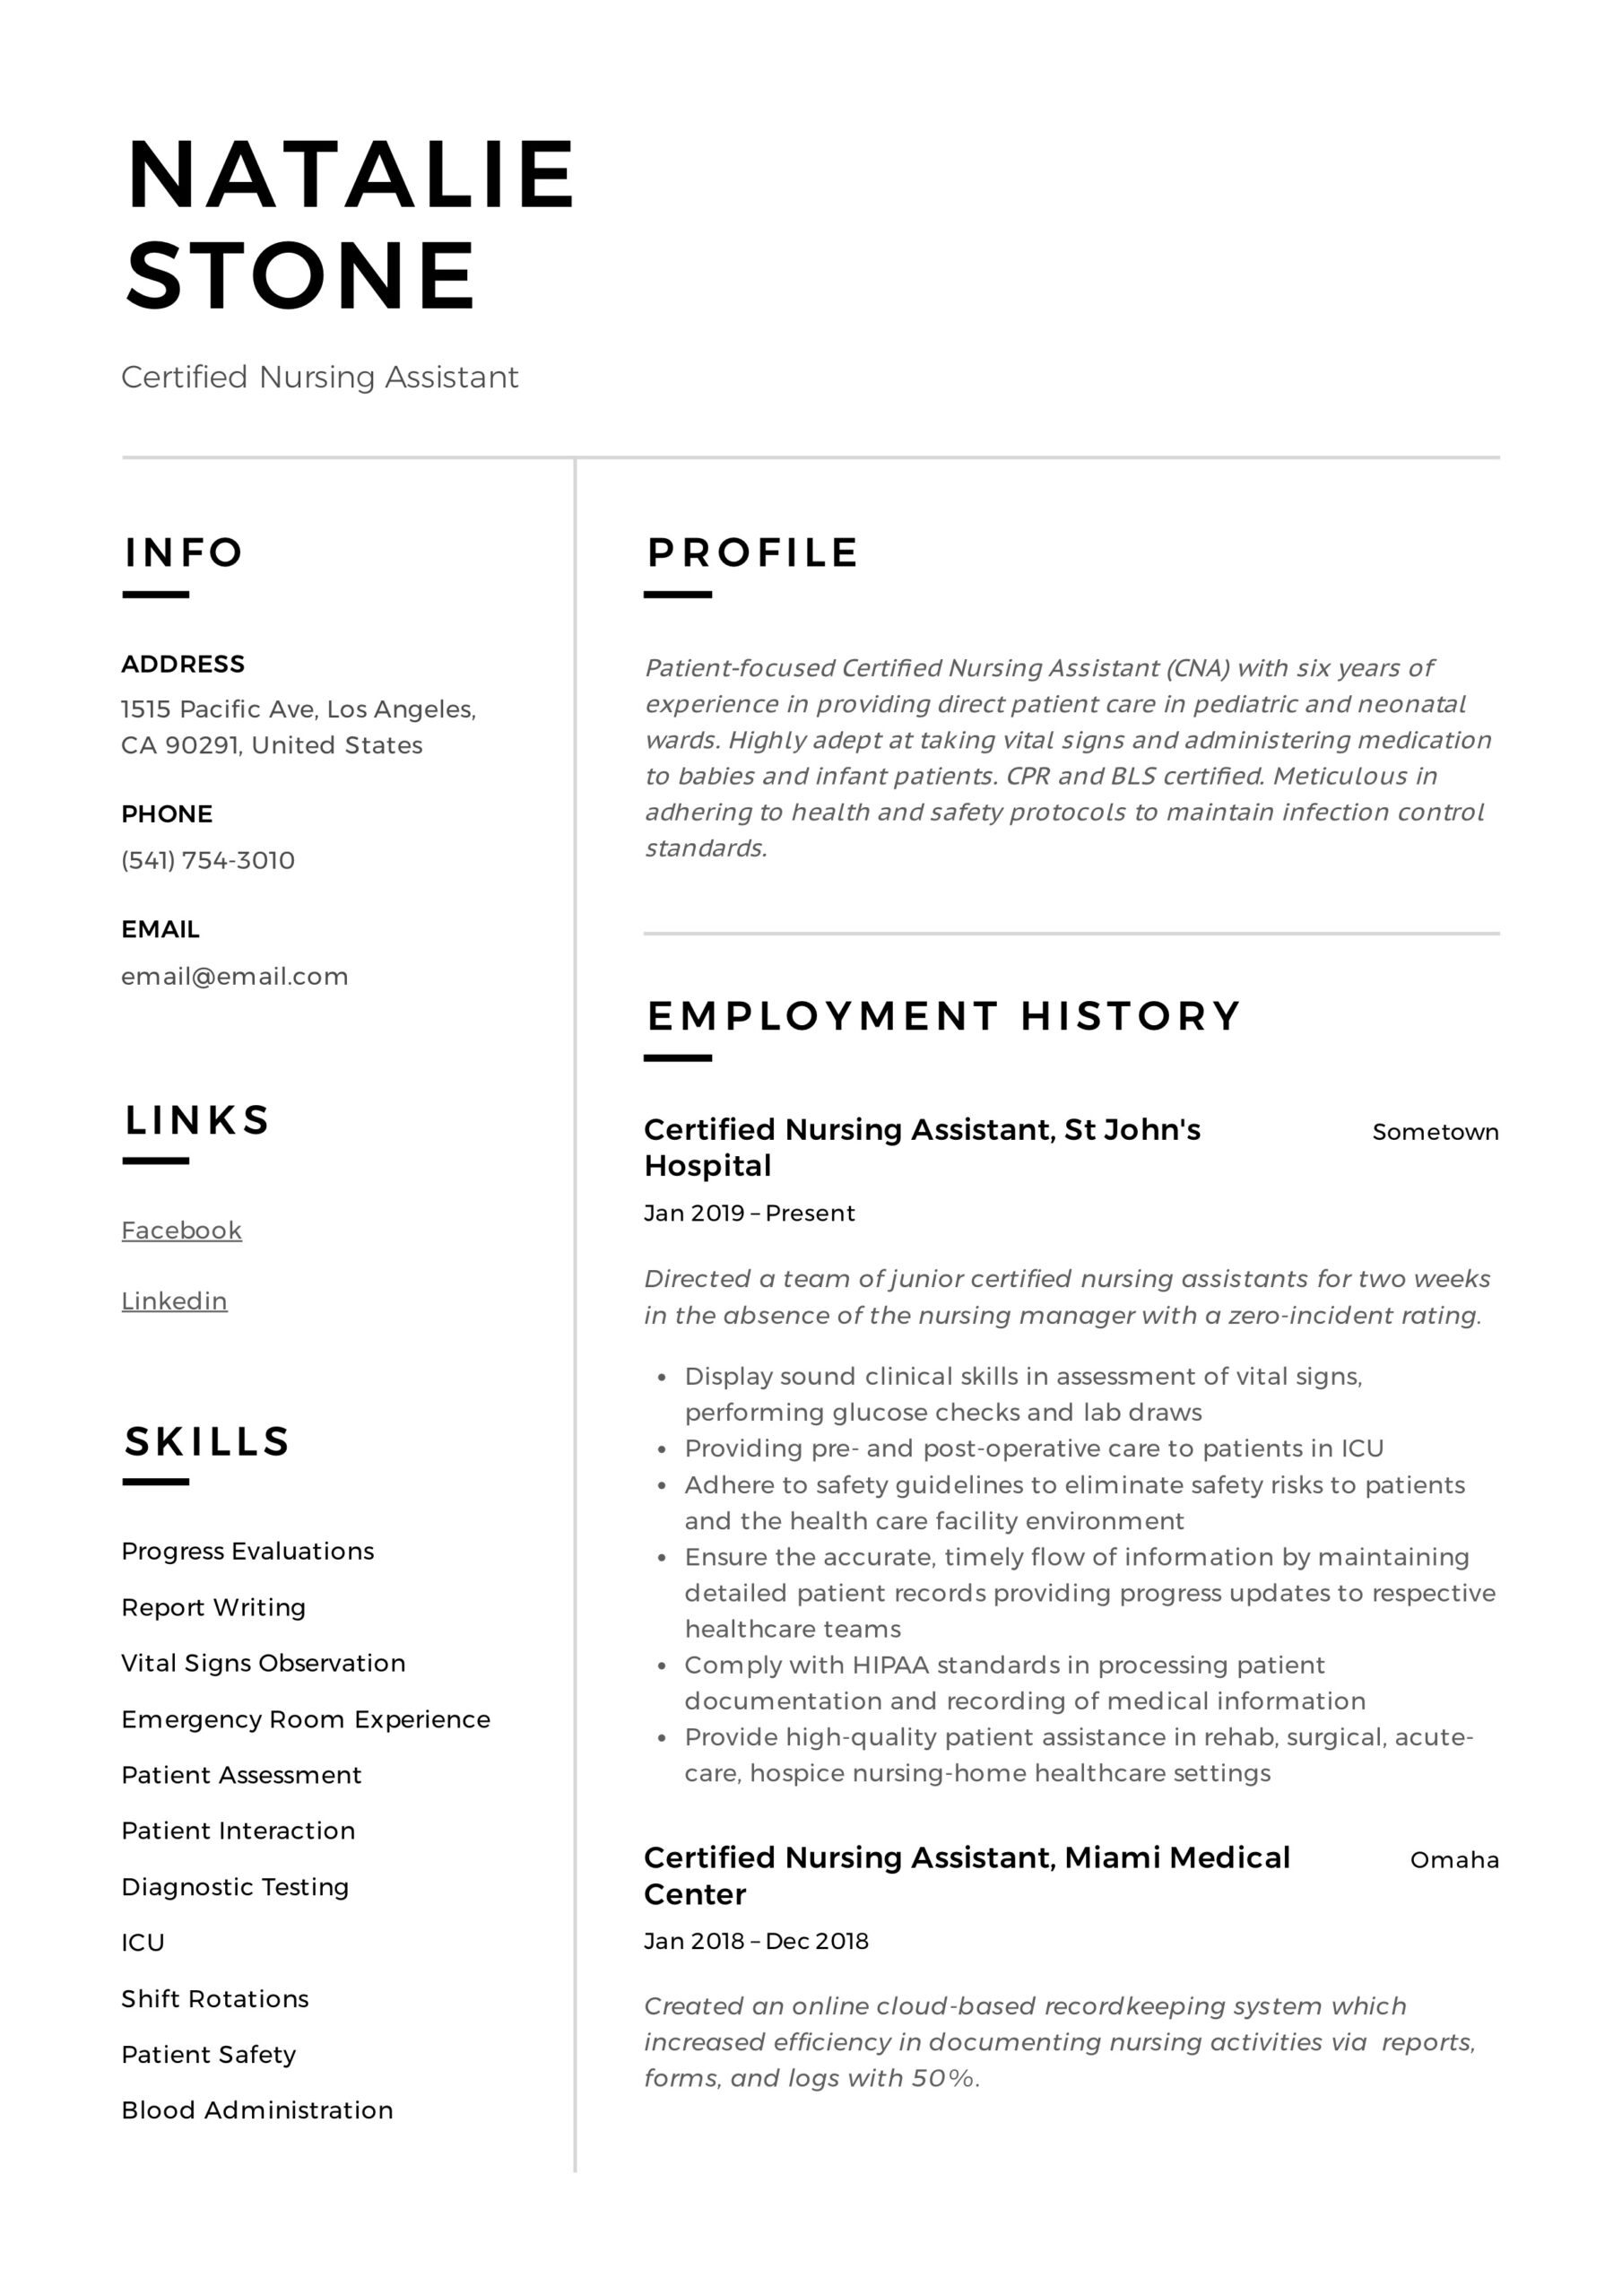 certified nursing assistant resume writing guide templates skills pharmacist objective Resume Nursing Assistant Resume Skills